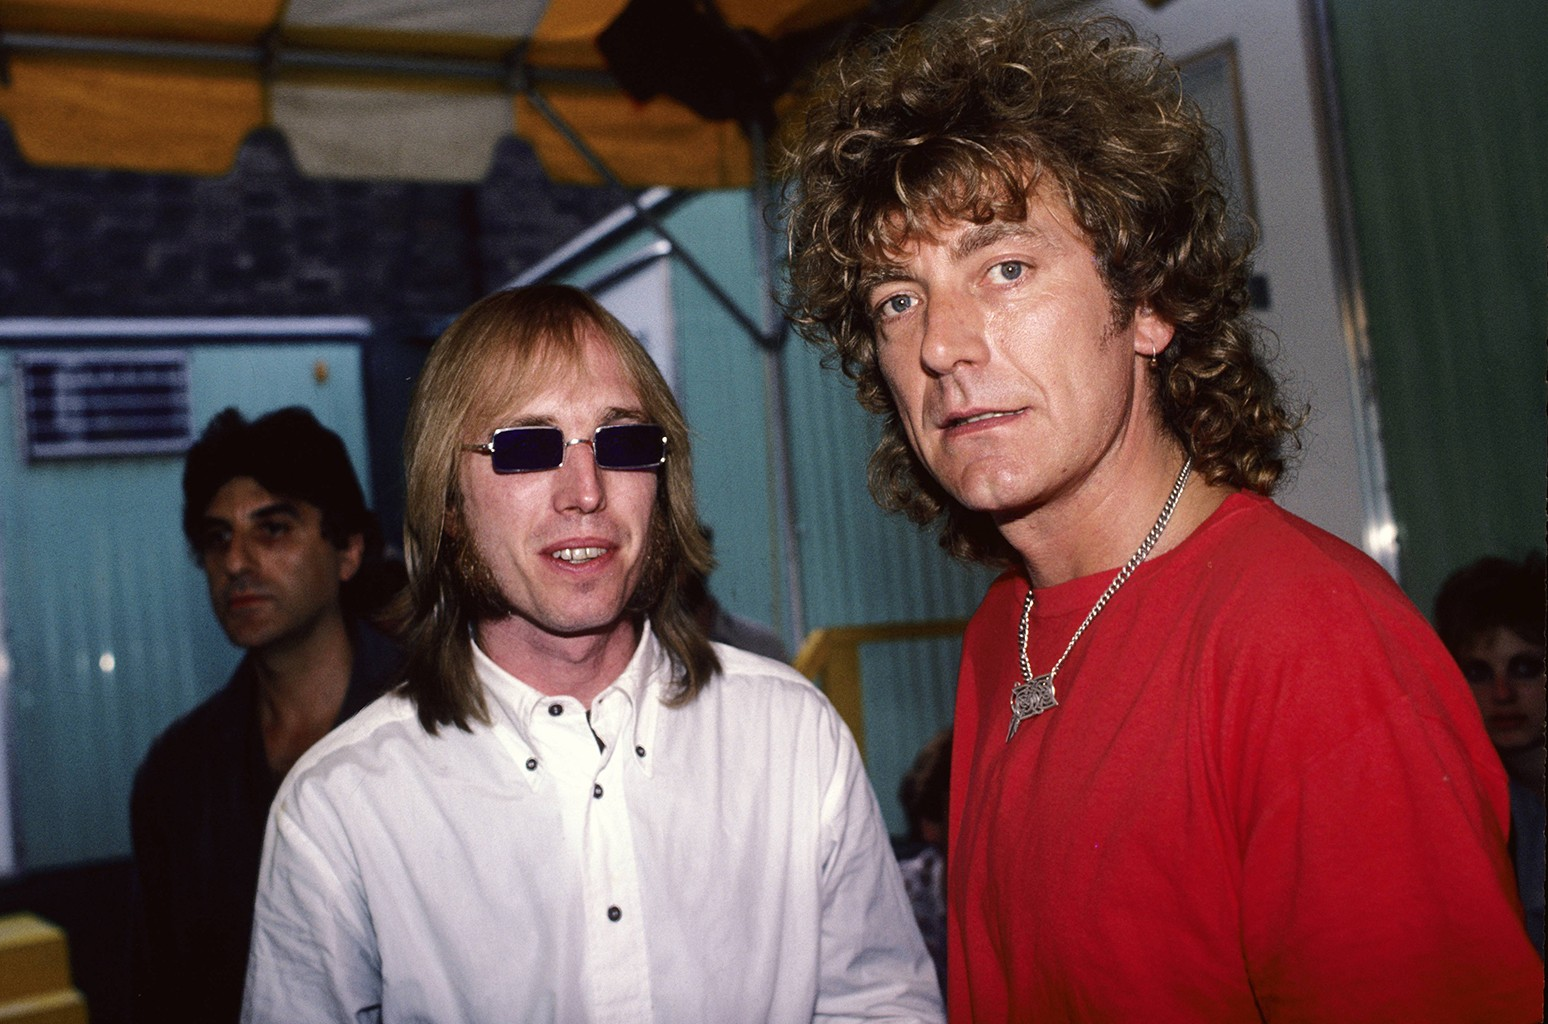 Tom Petty and Robert Plant